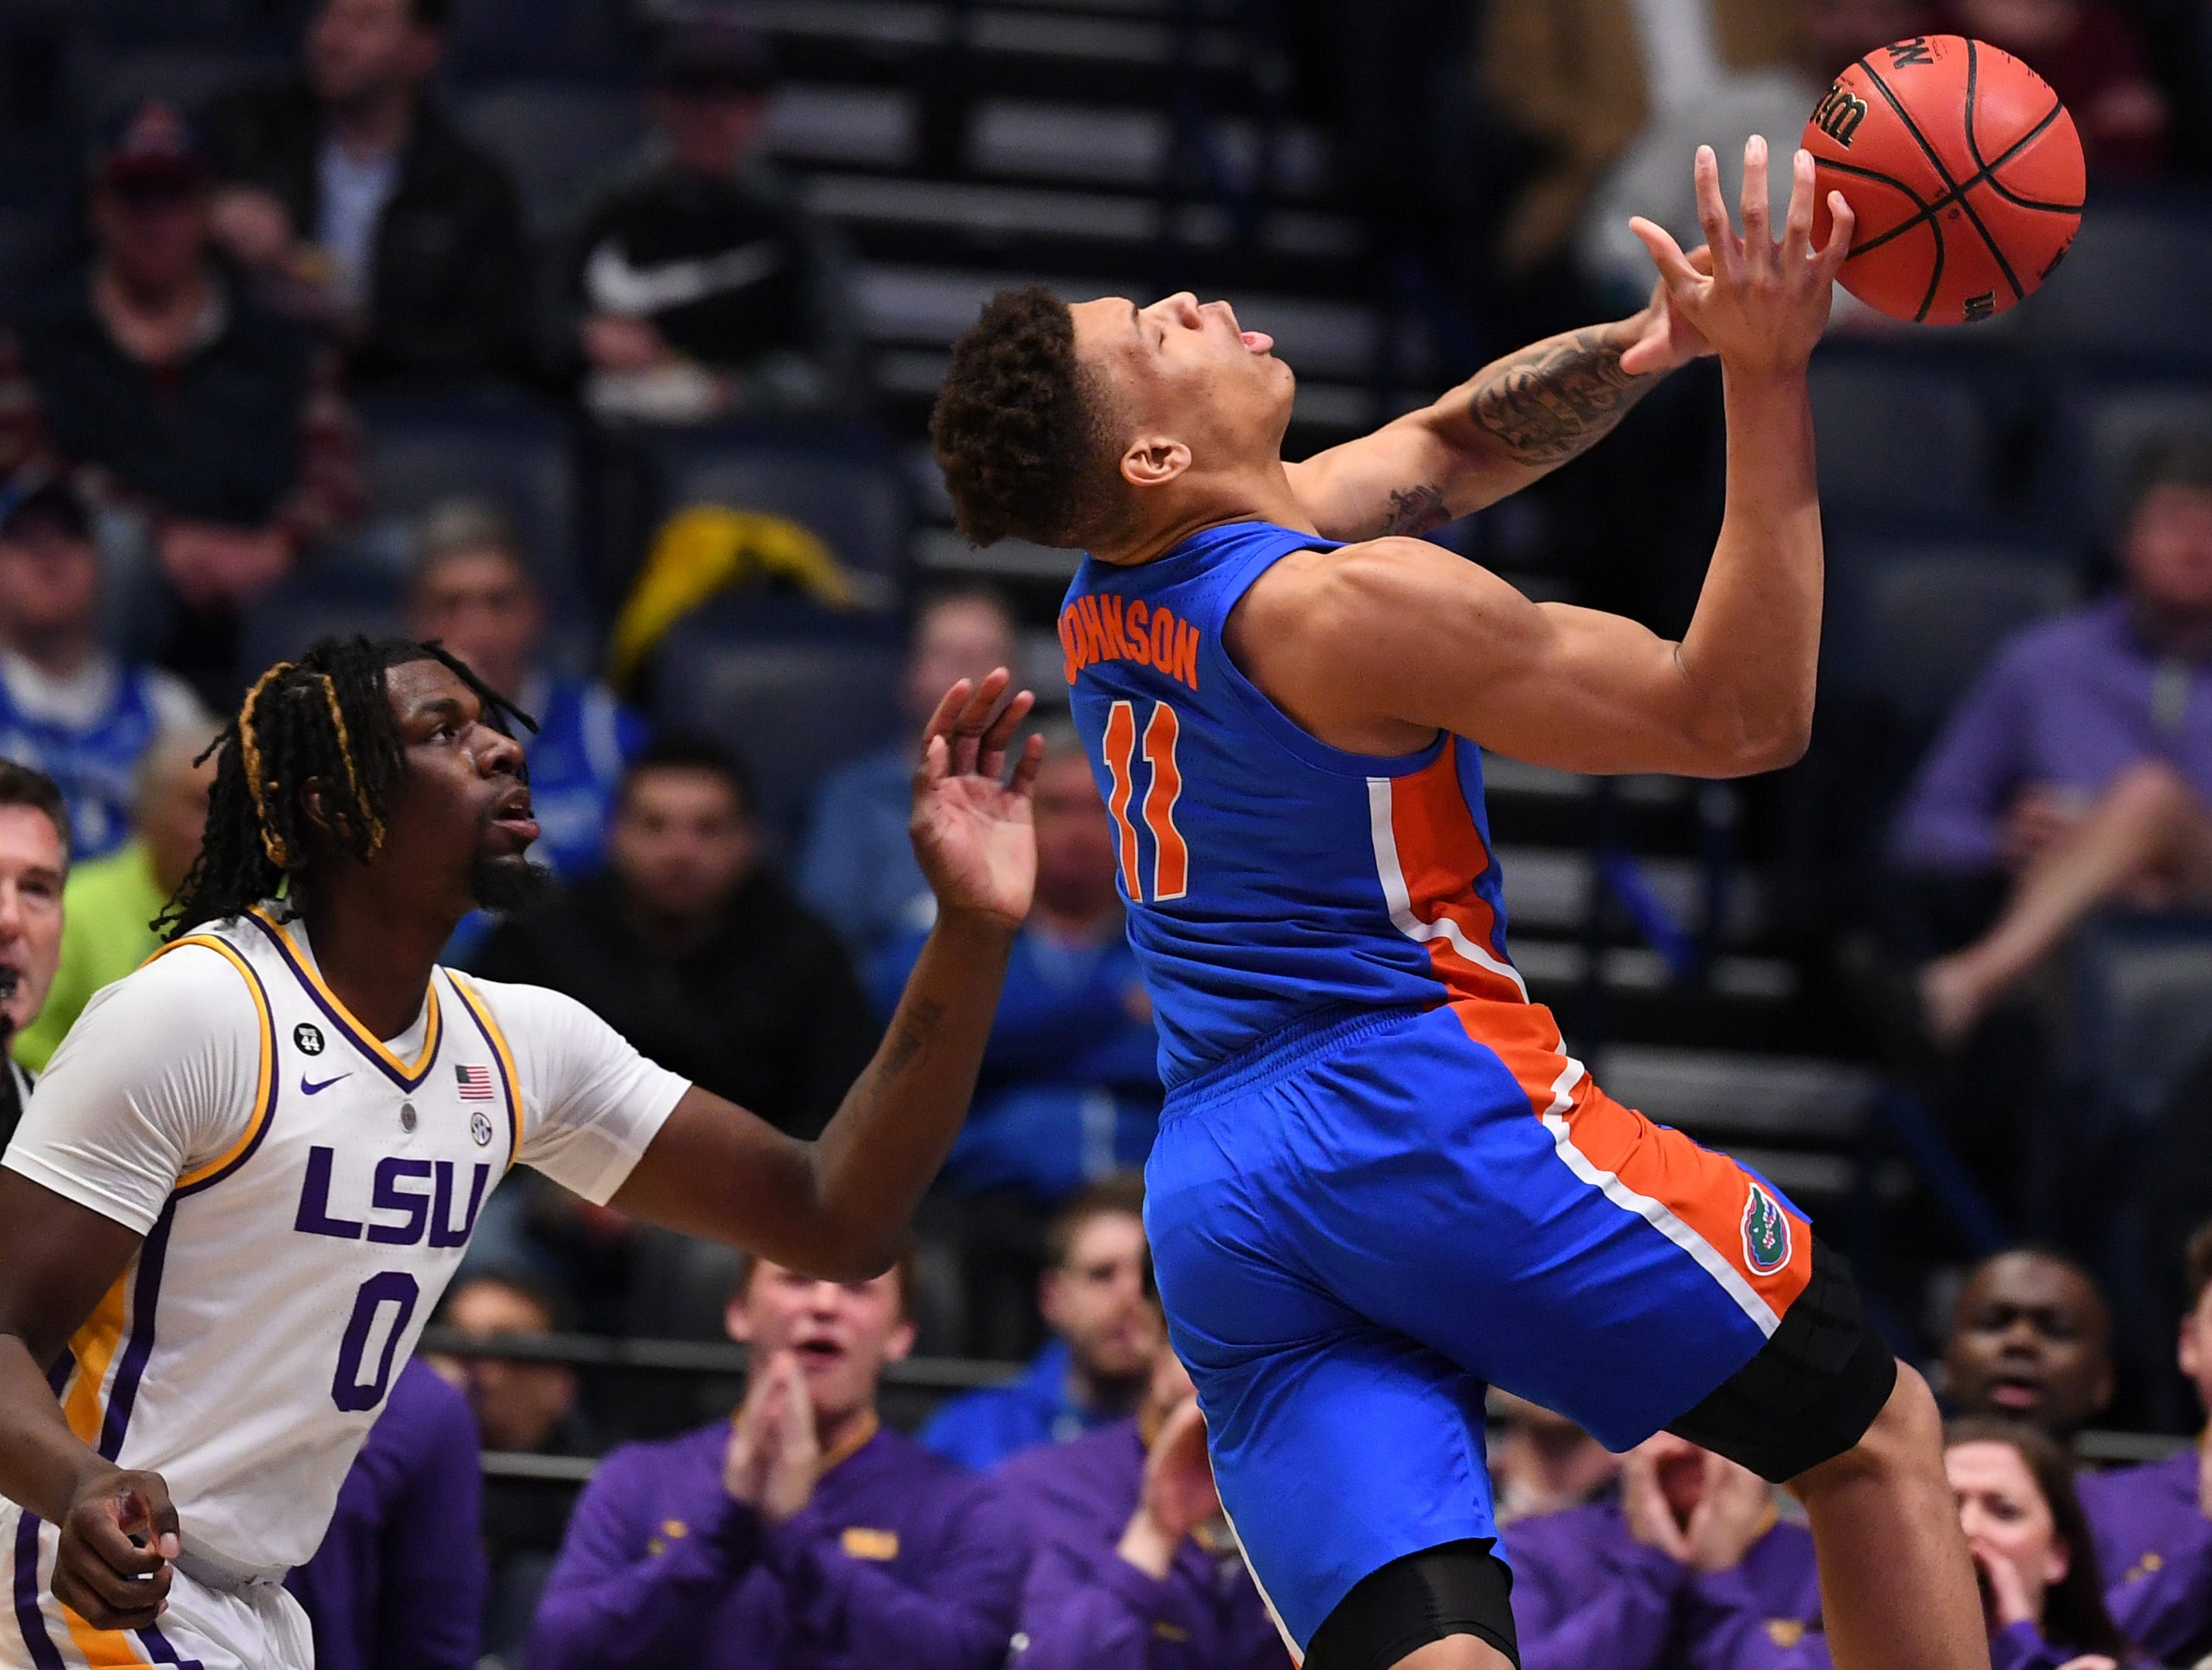 Mar 15, 2019; Nashville, TN, USA; Florida Gators forward Keyontae Johnson (11) is fouled by LSU Tigers forward Naz Reid (0) while shooting the ball during the first half of the SEC conference tournament at Bridgestone Arena. Mandatory Credit: Christopher Hanewinckel-USA TODAY Sports